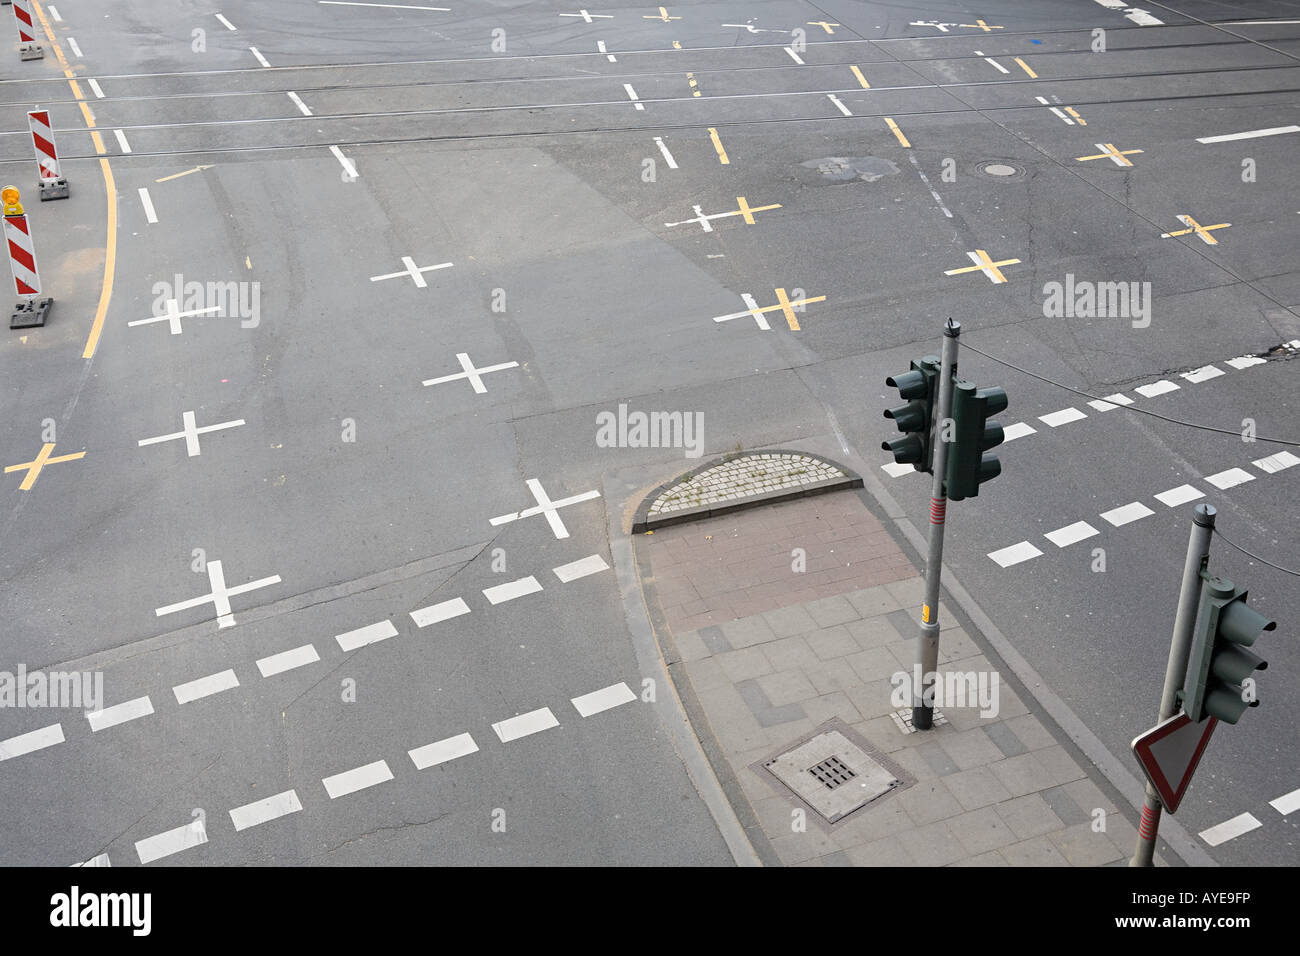 Tram lines on a road - Stock Image